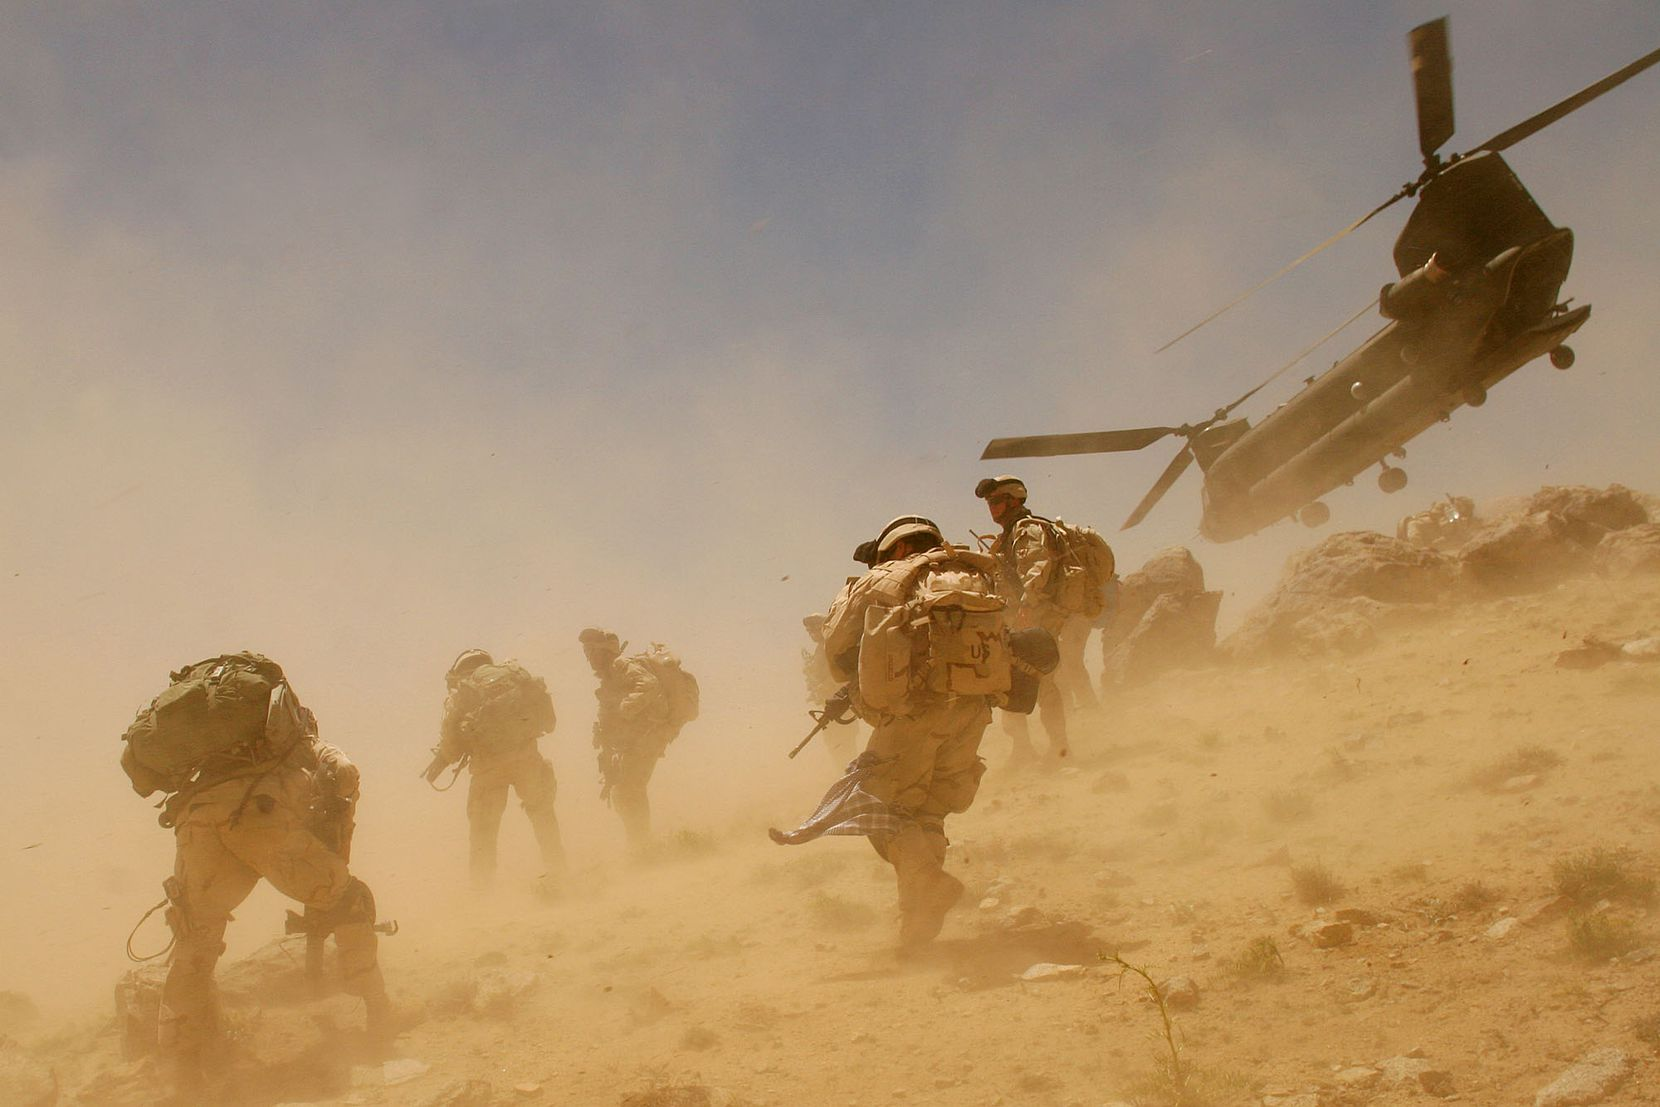 SEAL Team 6 and what really happened on America's deadliest